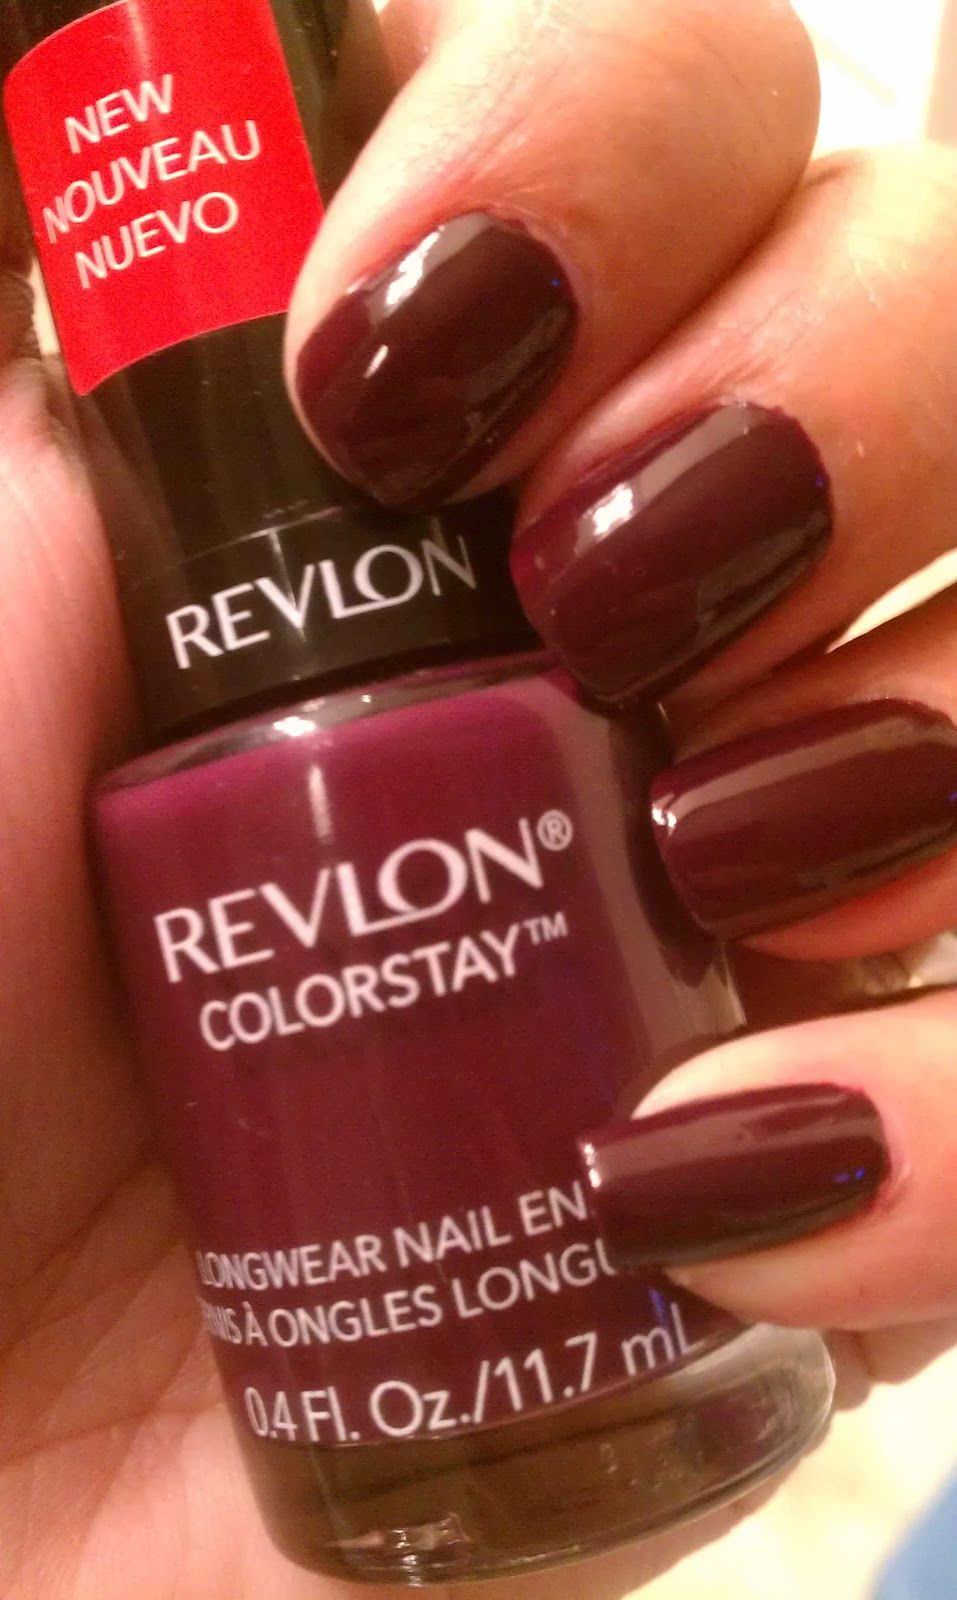 Revlon nail polish color chart the revlon colorstay longwear revlon nail polish color chart the revlon colorstay longwear nail enamel comes in 32 shades nvjuhfo Image collections